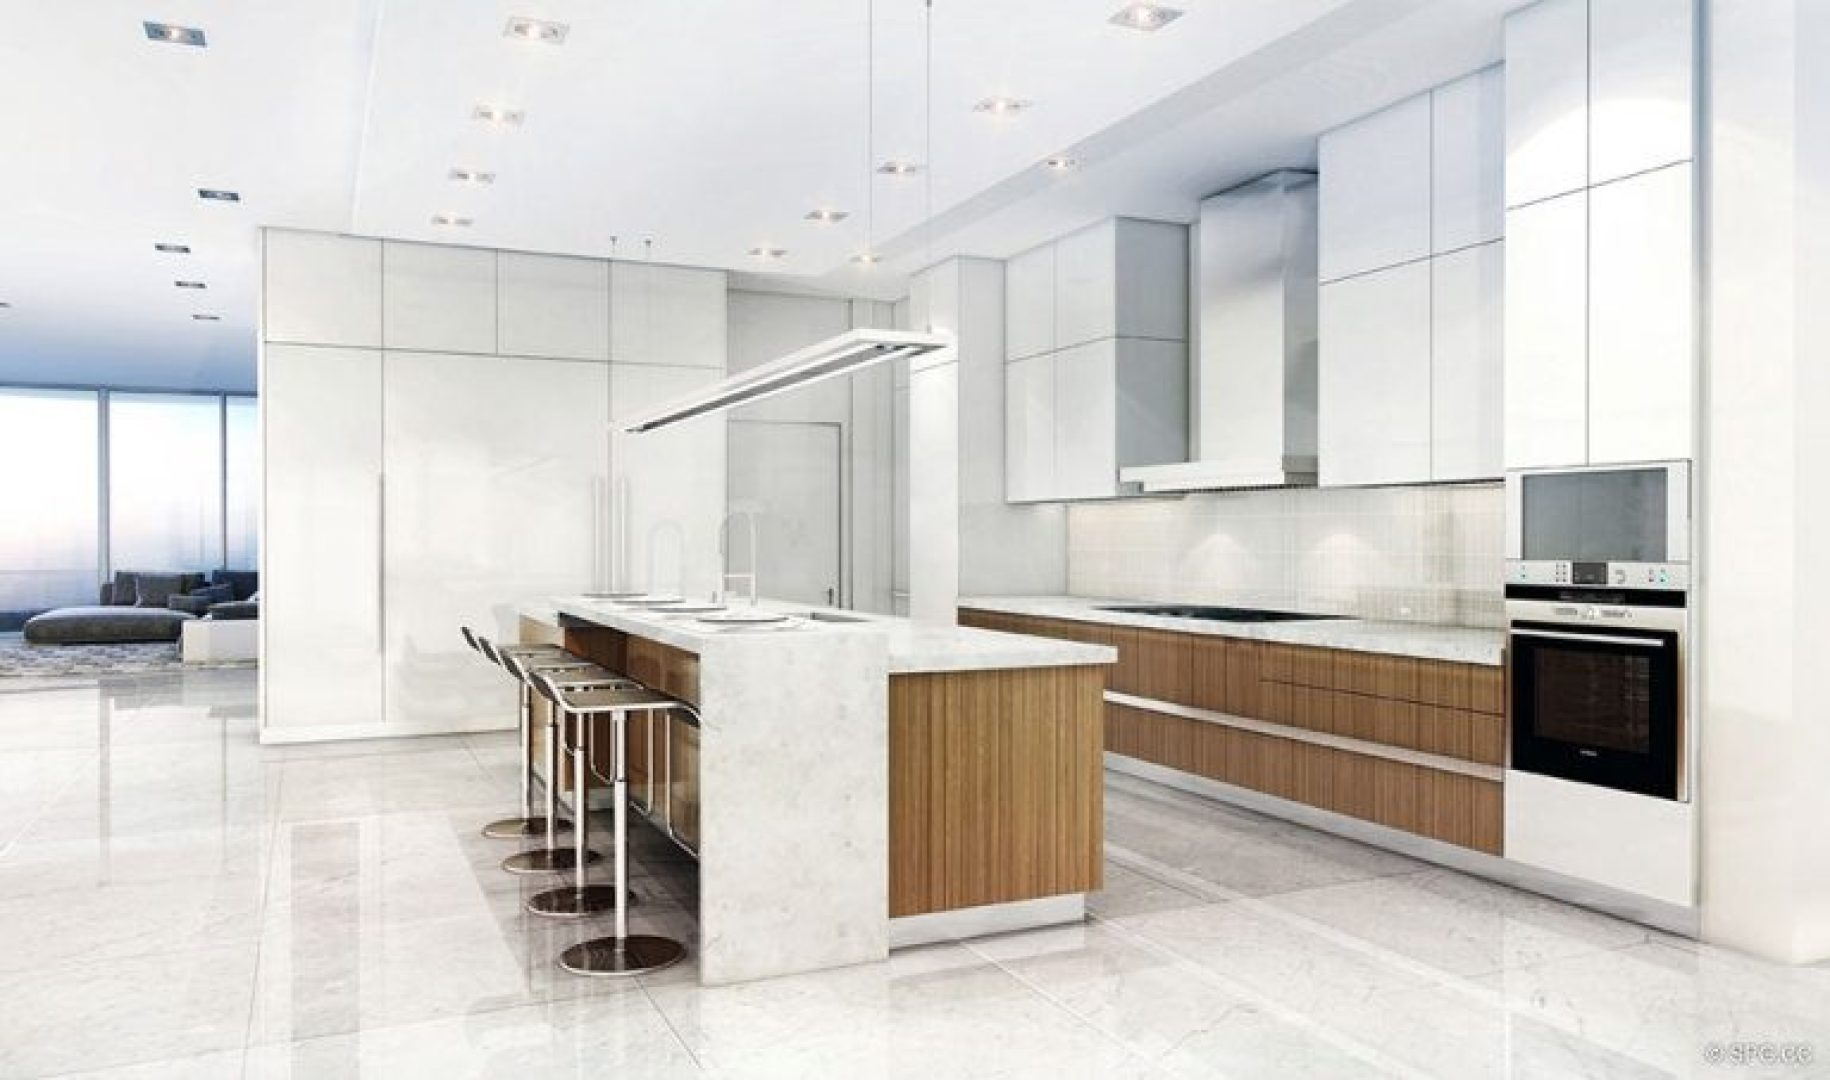 Gourmet Kitchens inside 321 at Water's Edge, Luxury Waterfront Condos in Fort Lauderdale, Florida 33304